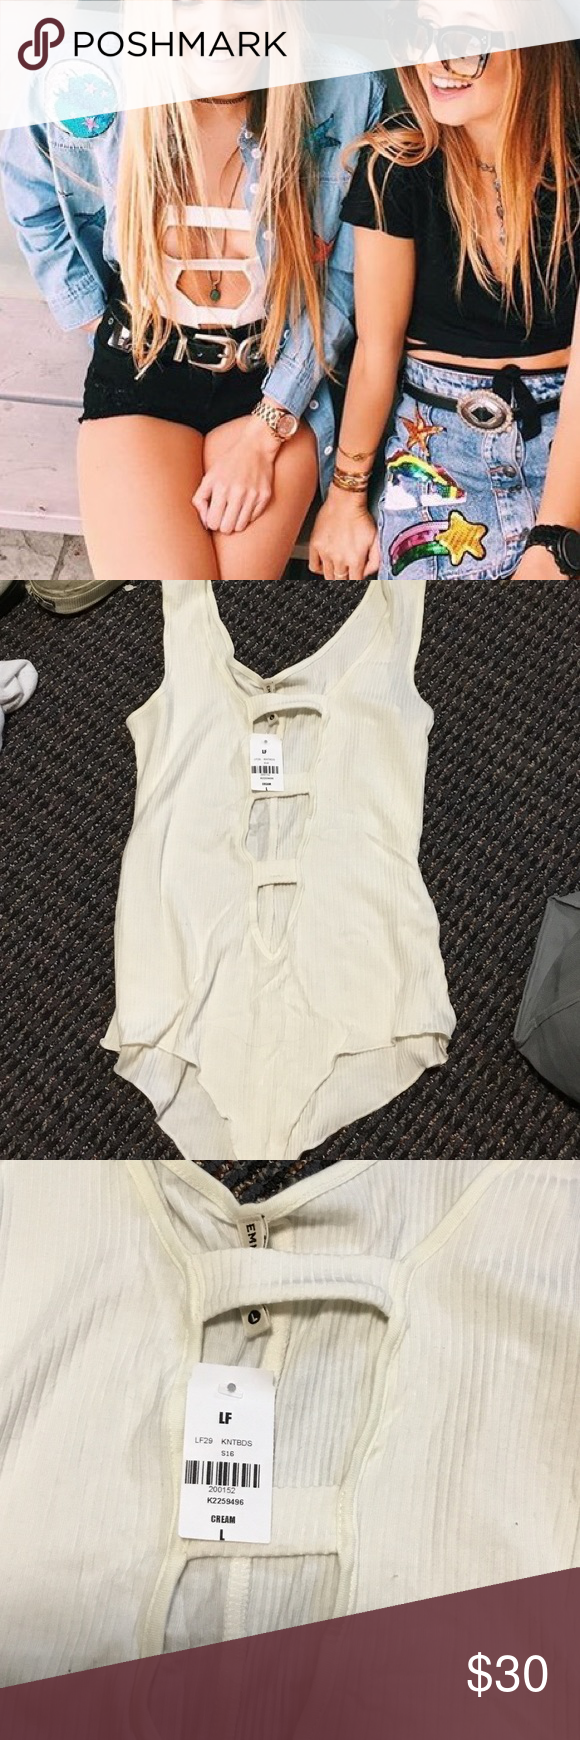 LF Stores White Ladder Bodysuit Brand new with tags. LF Tops Tank Tops